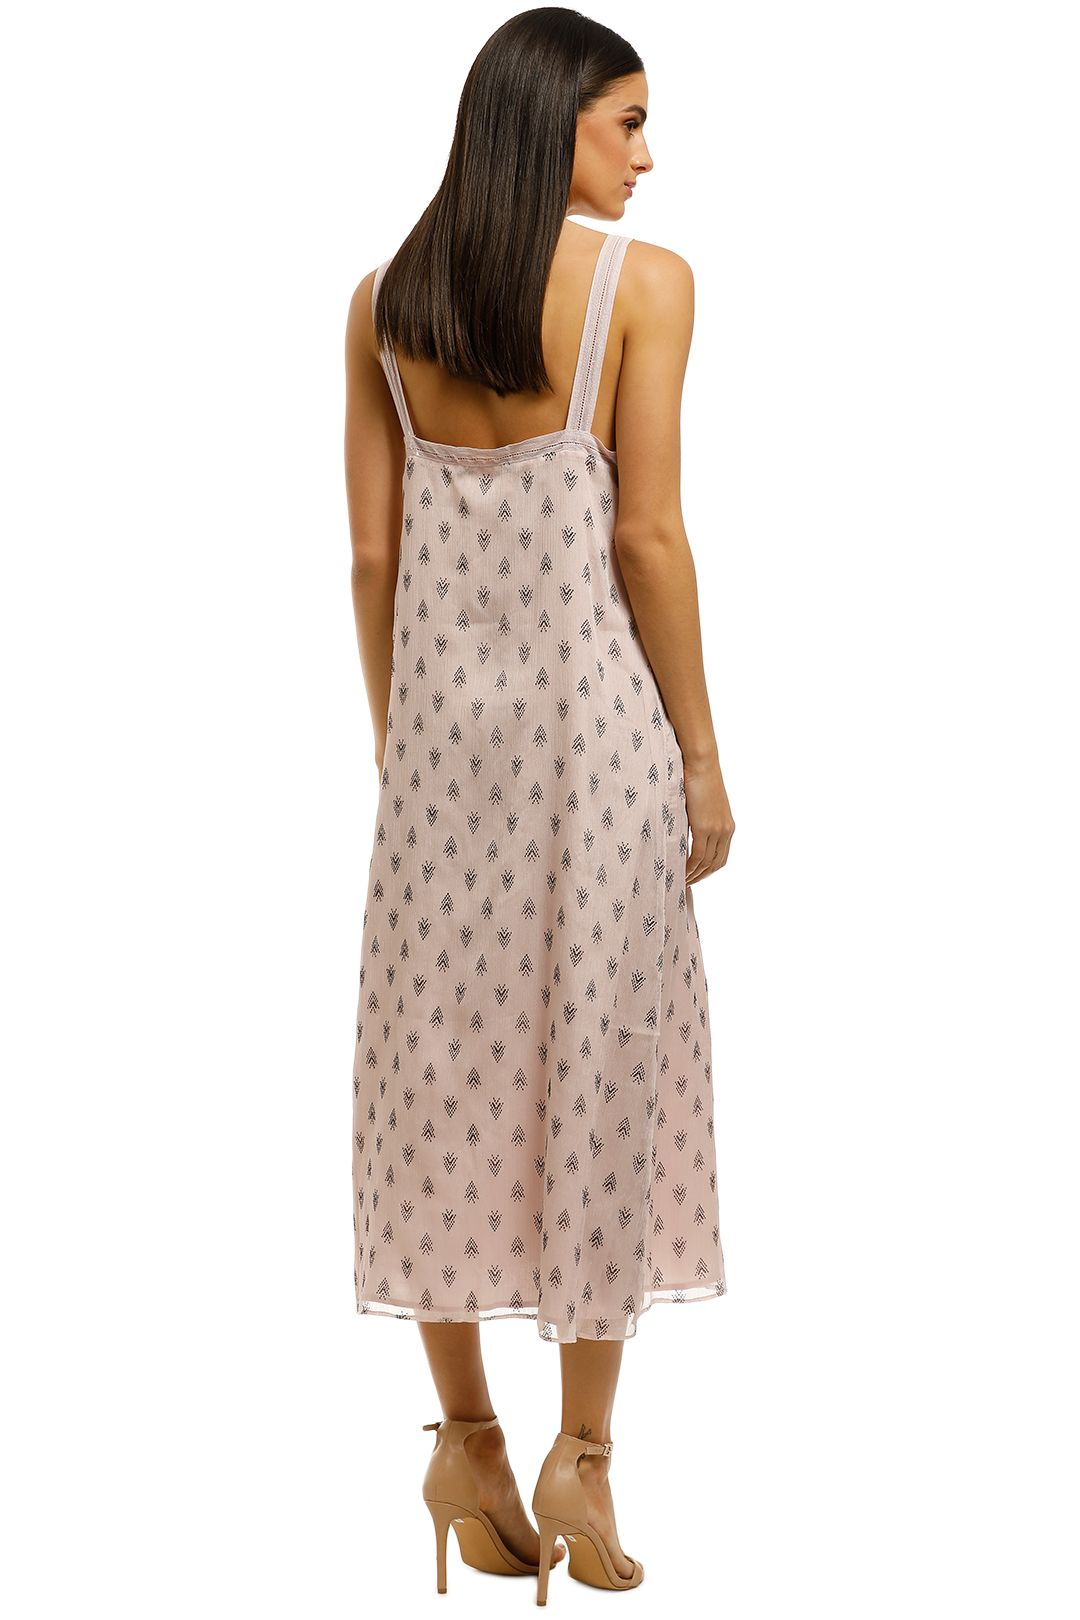 Stevie-May-On-Hold-Midi-Dress-Pink-Back